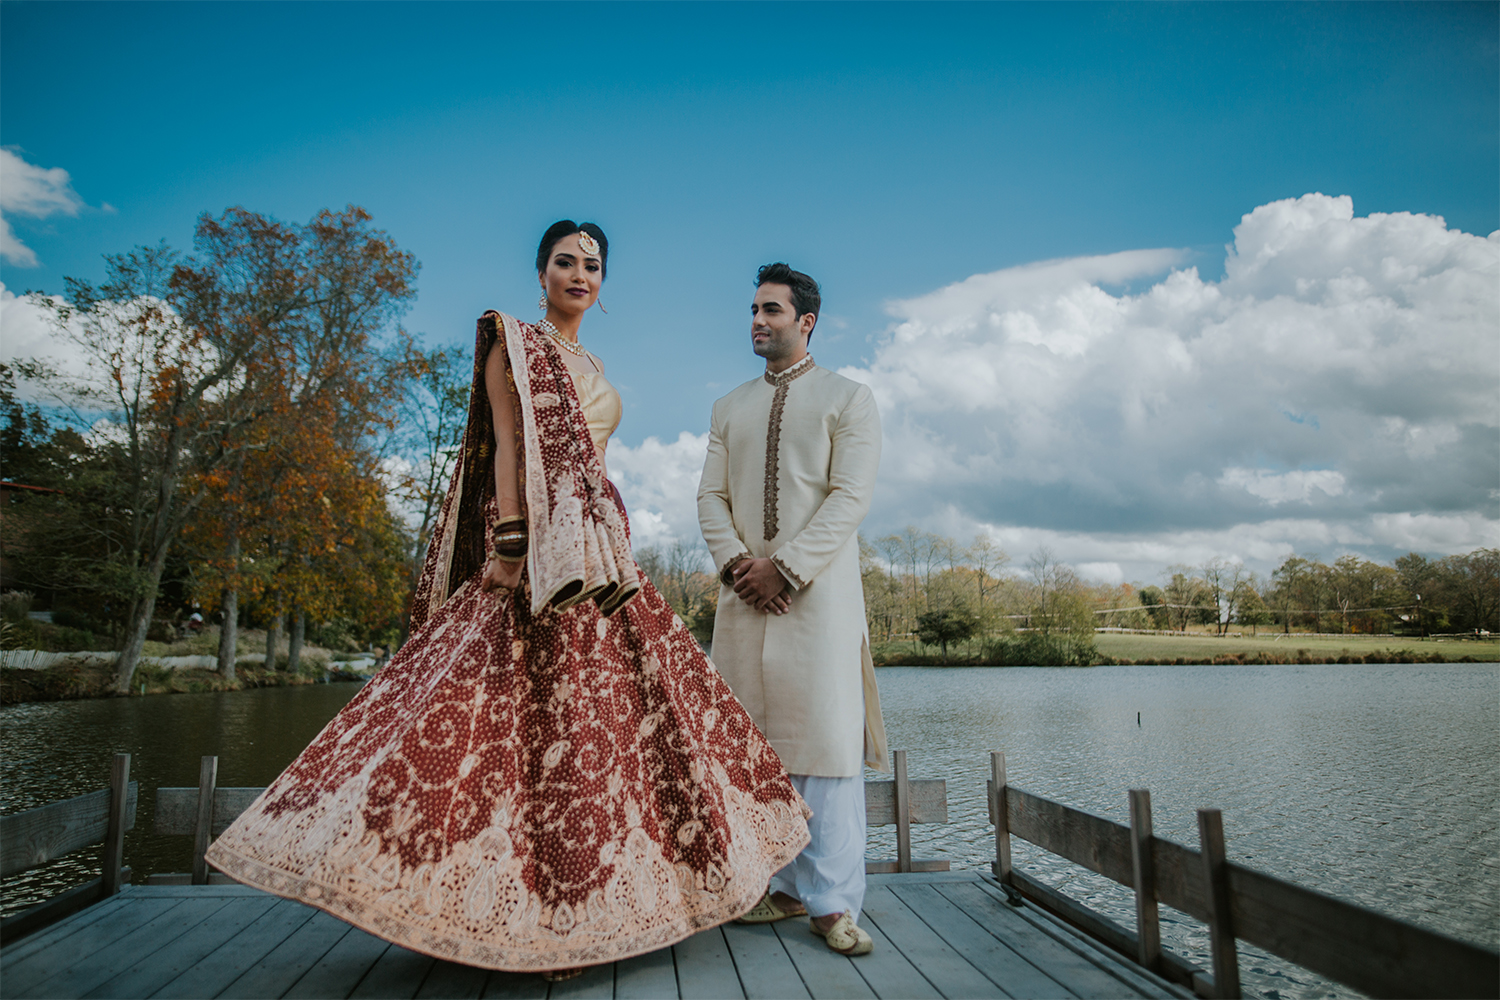 South_Asian_Wedding_Photography_New_Jersey_Weddings_Photographer005.jpg